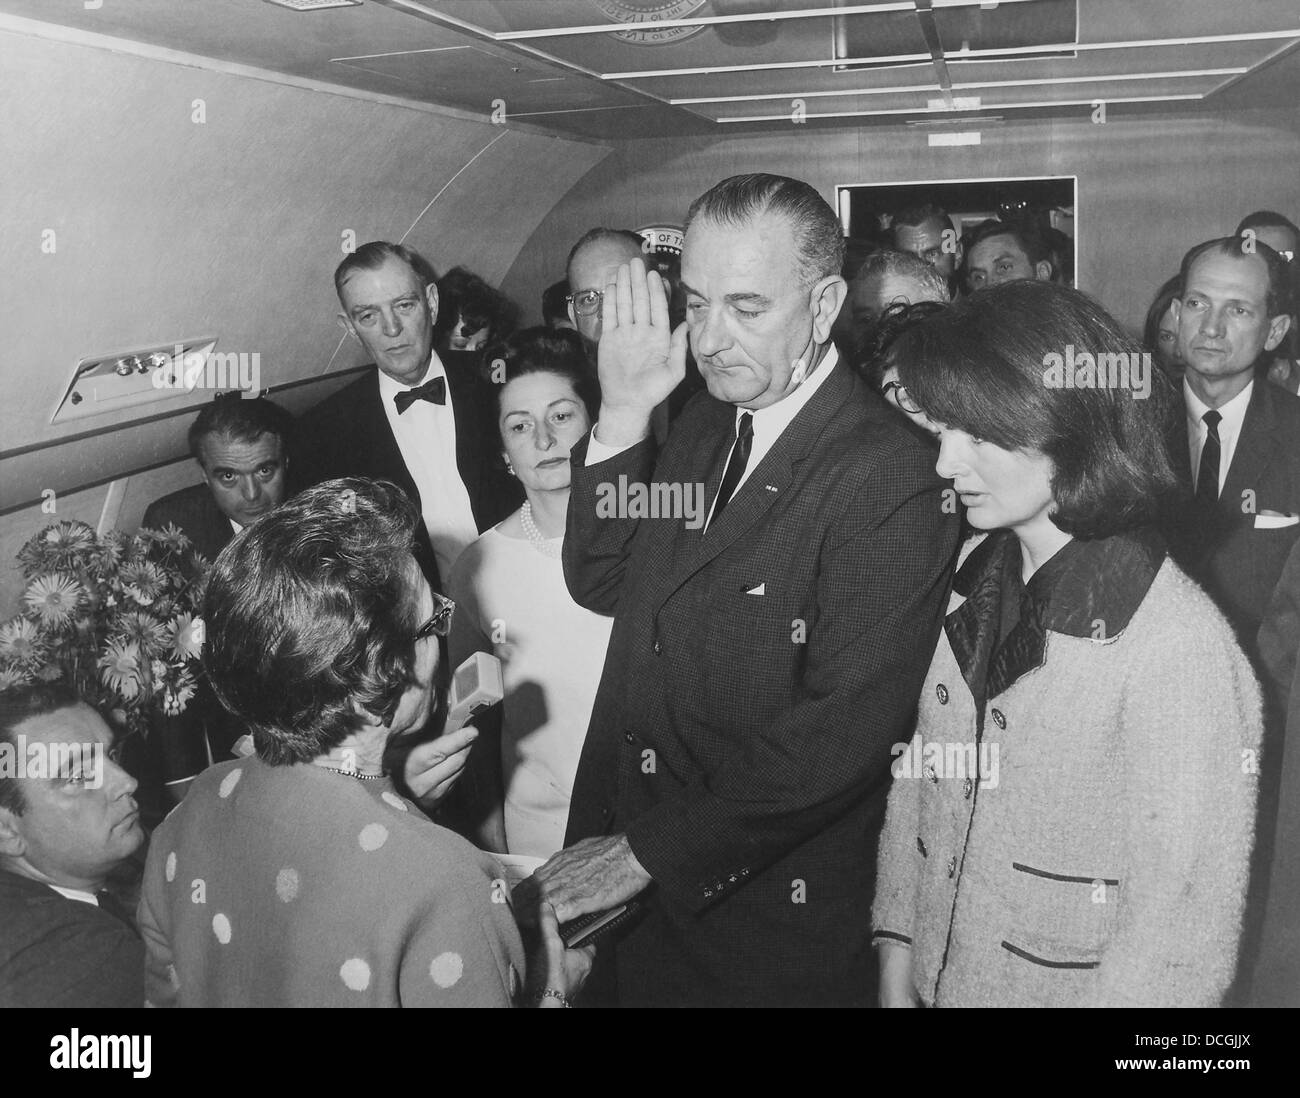 Lyndon Johnson taking the Presidential Oath of Office. - Stock Image